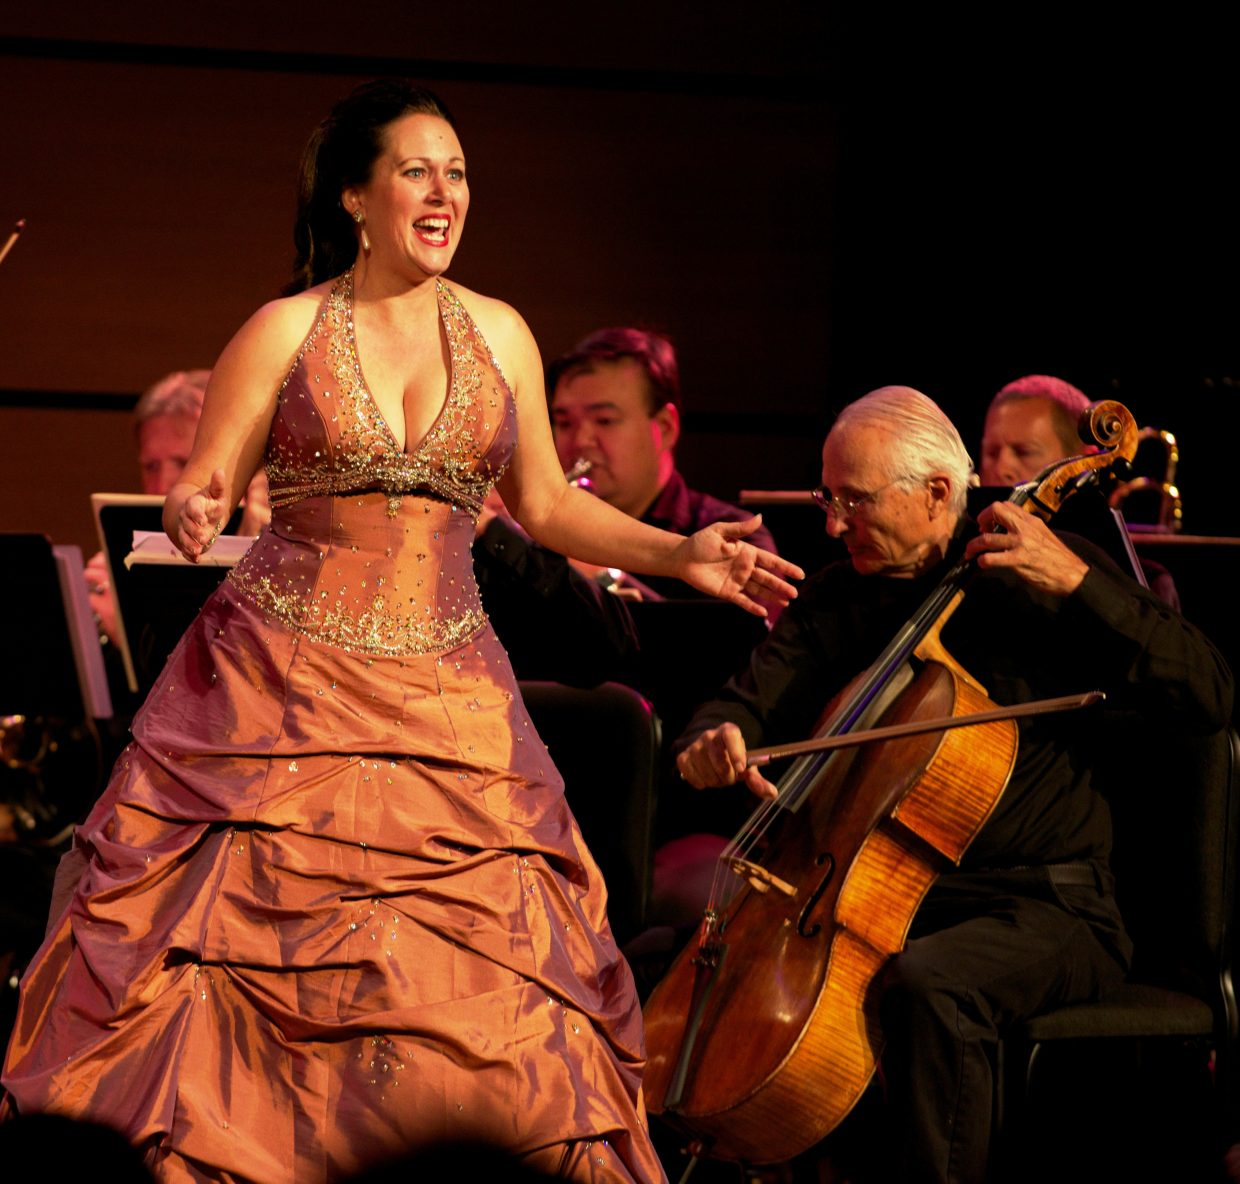 Keri Rusthoi performs during the Emerald City Opera's 10th anniversary production.